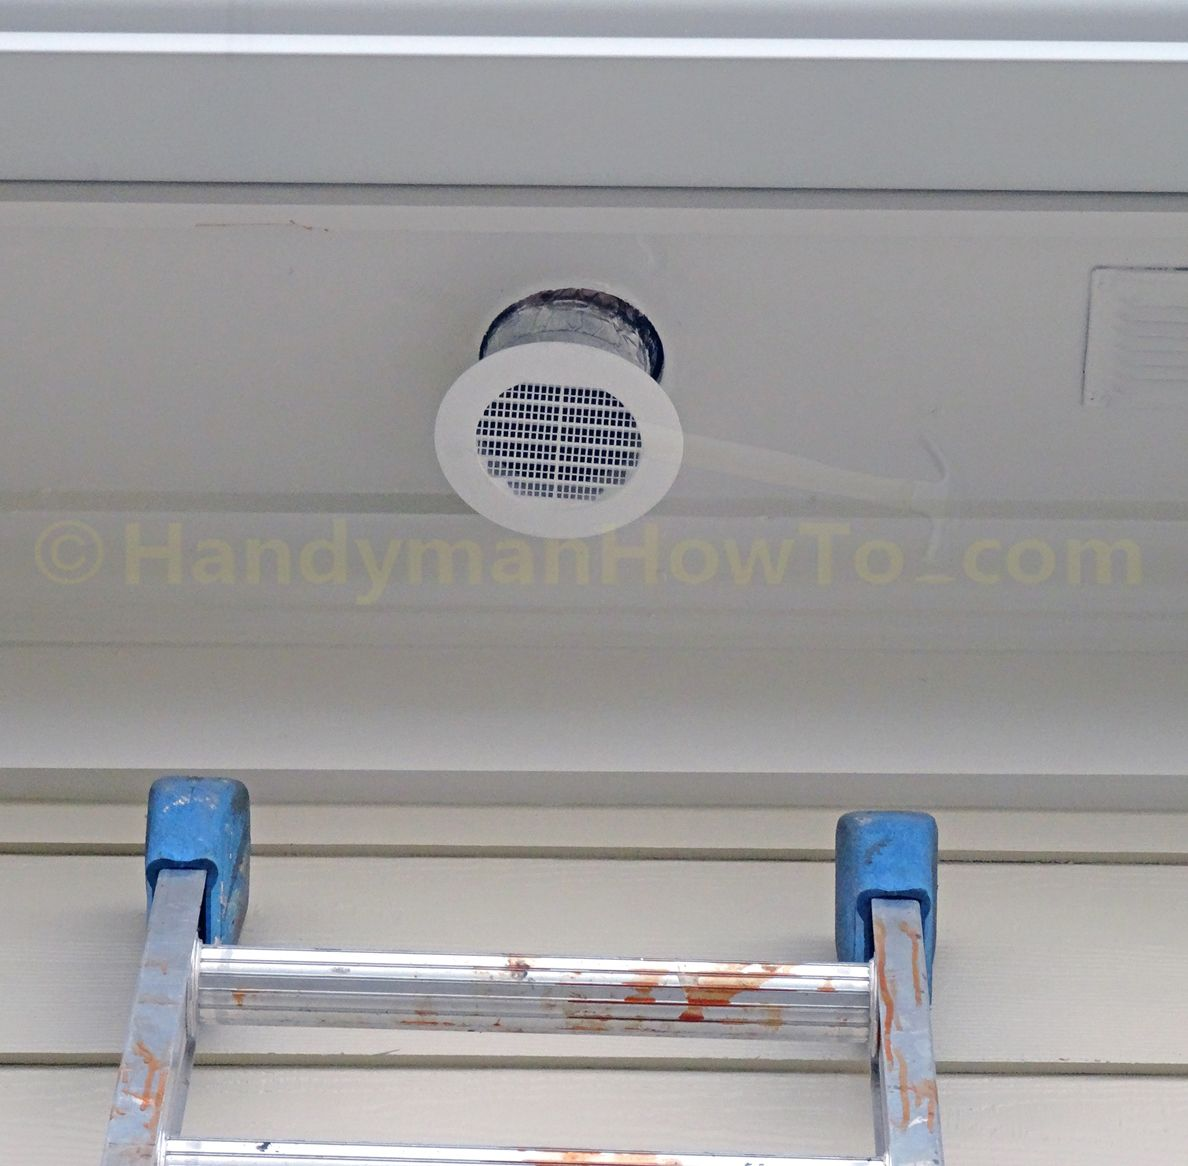 How To Install A Soffit Vent And Ductwork For Bathroom Fan Inline Duct Booster Wiring Diagram Mount The Connect Flexible With Photos